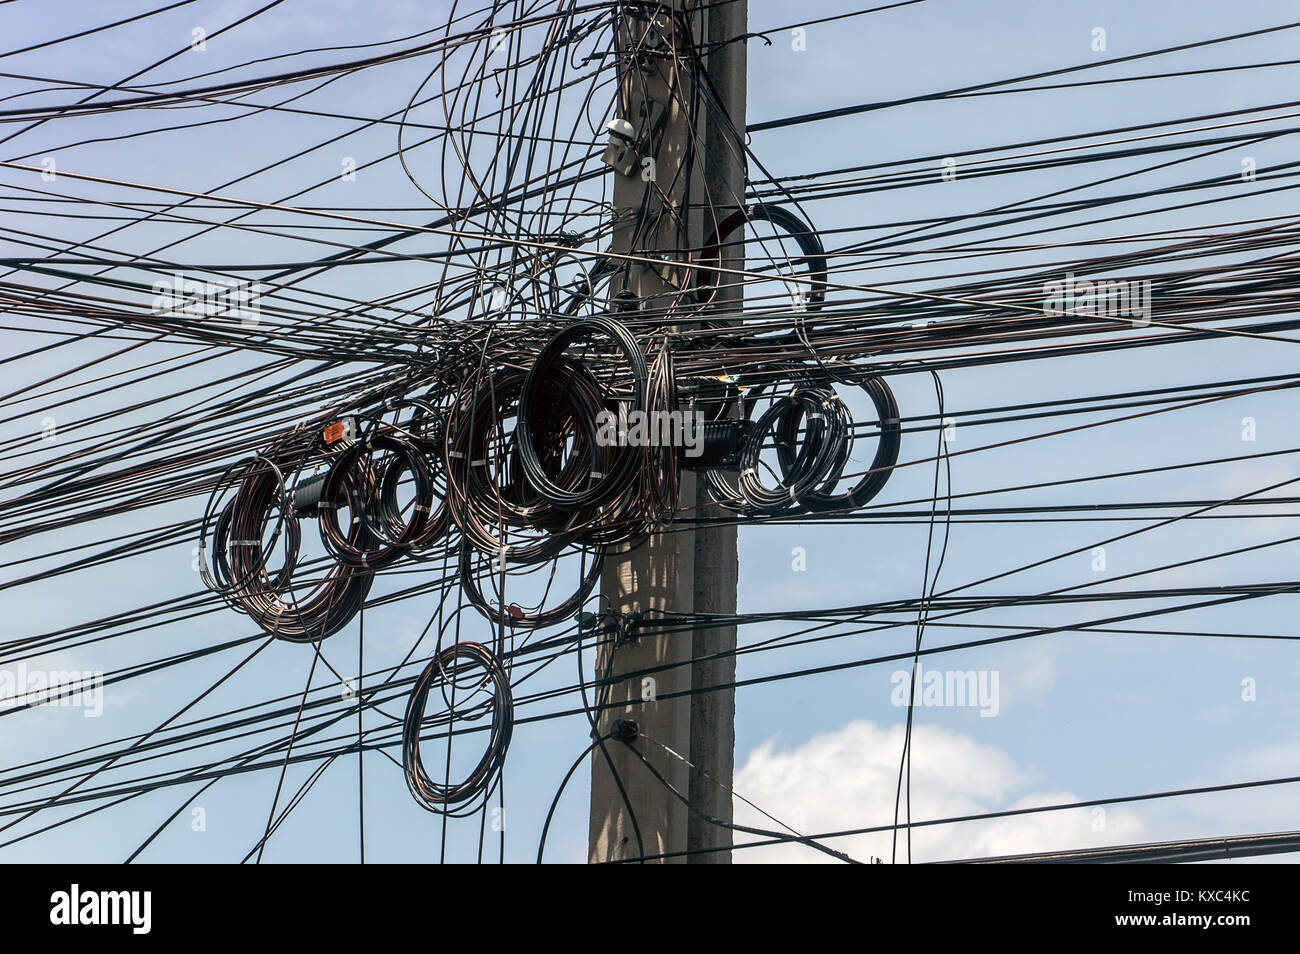 Messy wires attached to the electric mast. The chaos of cables and ...